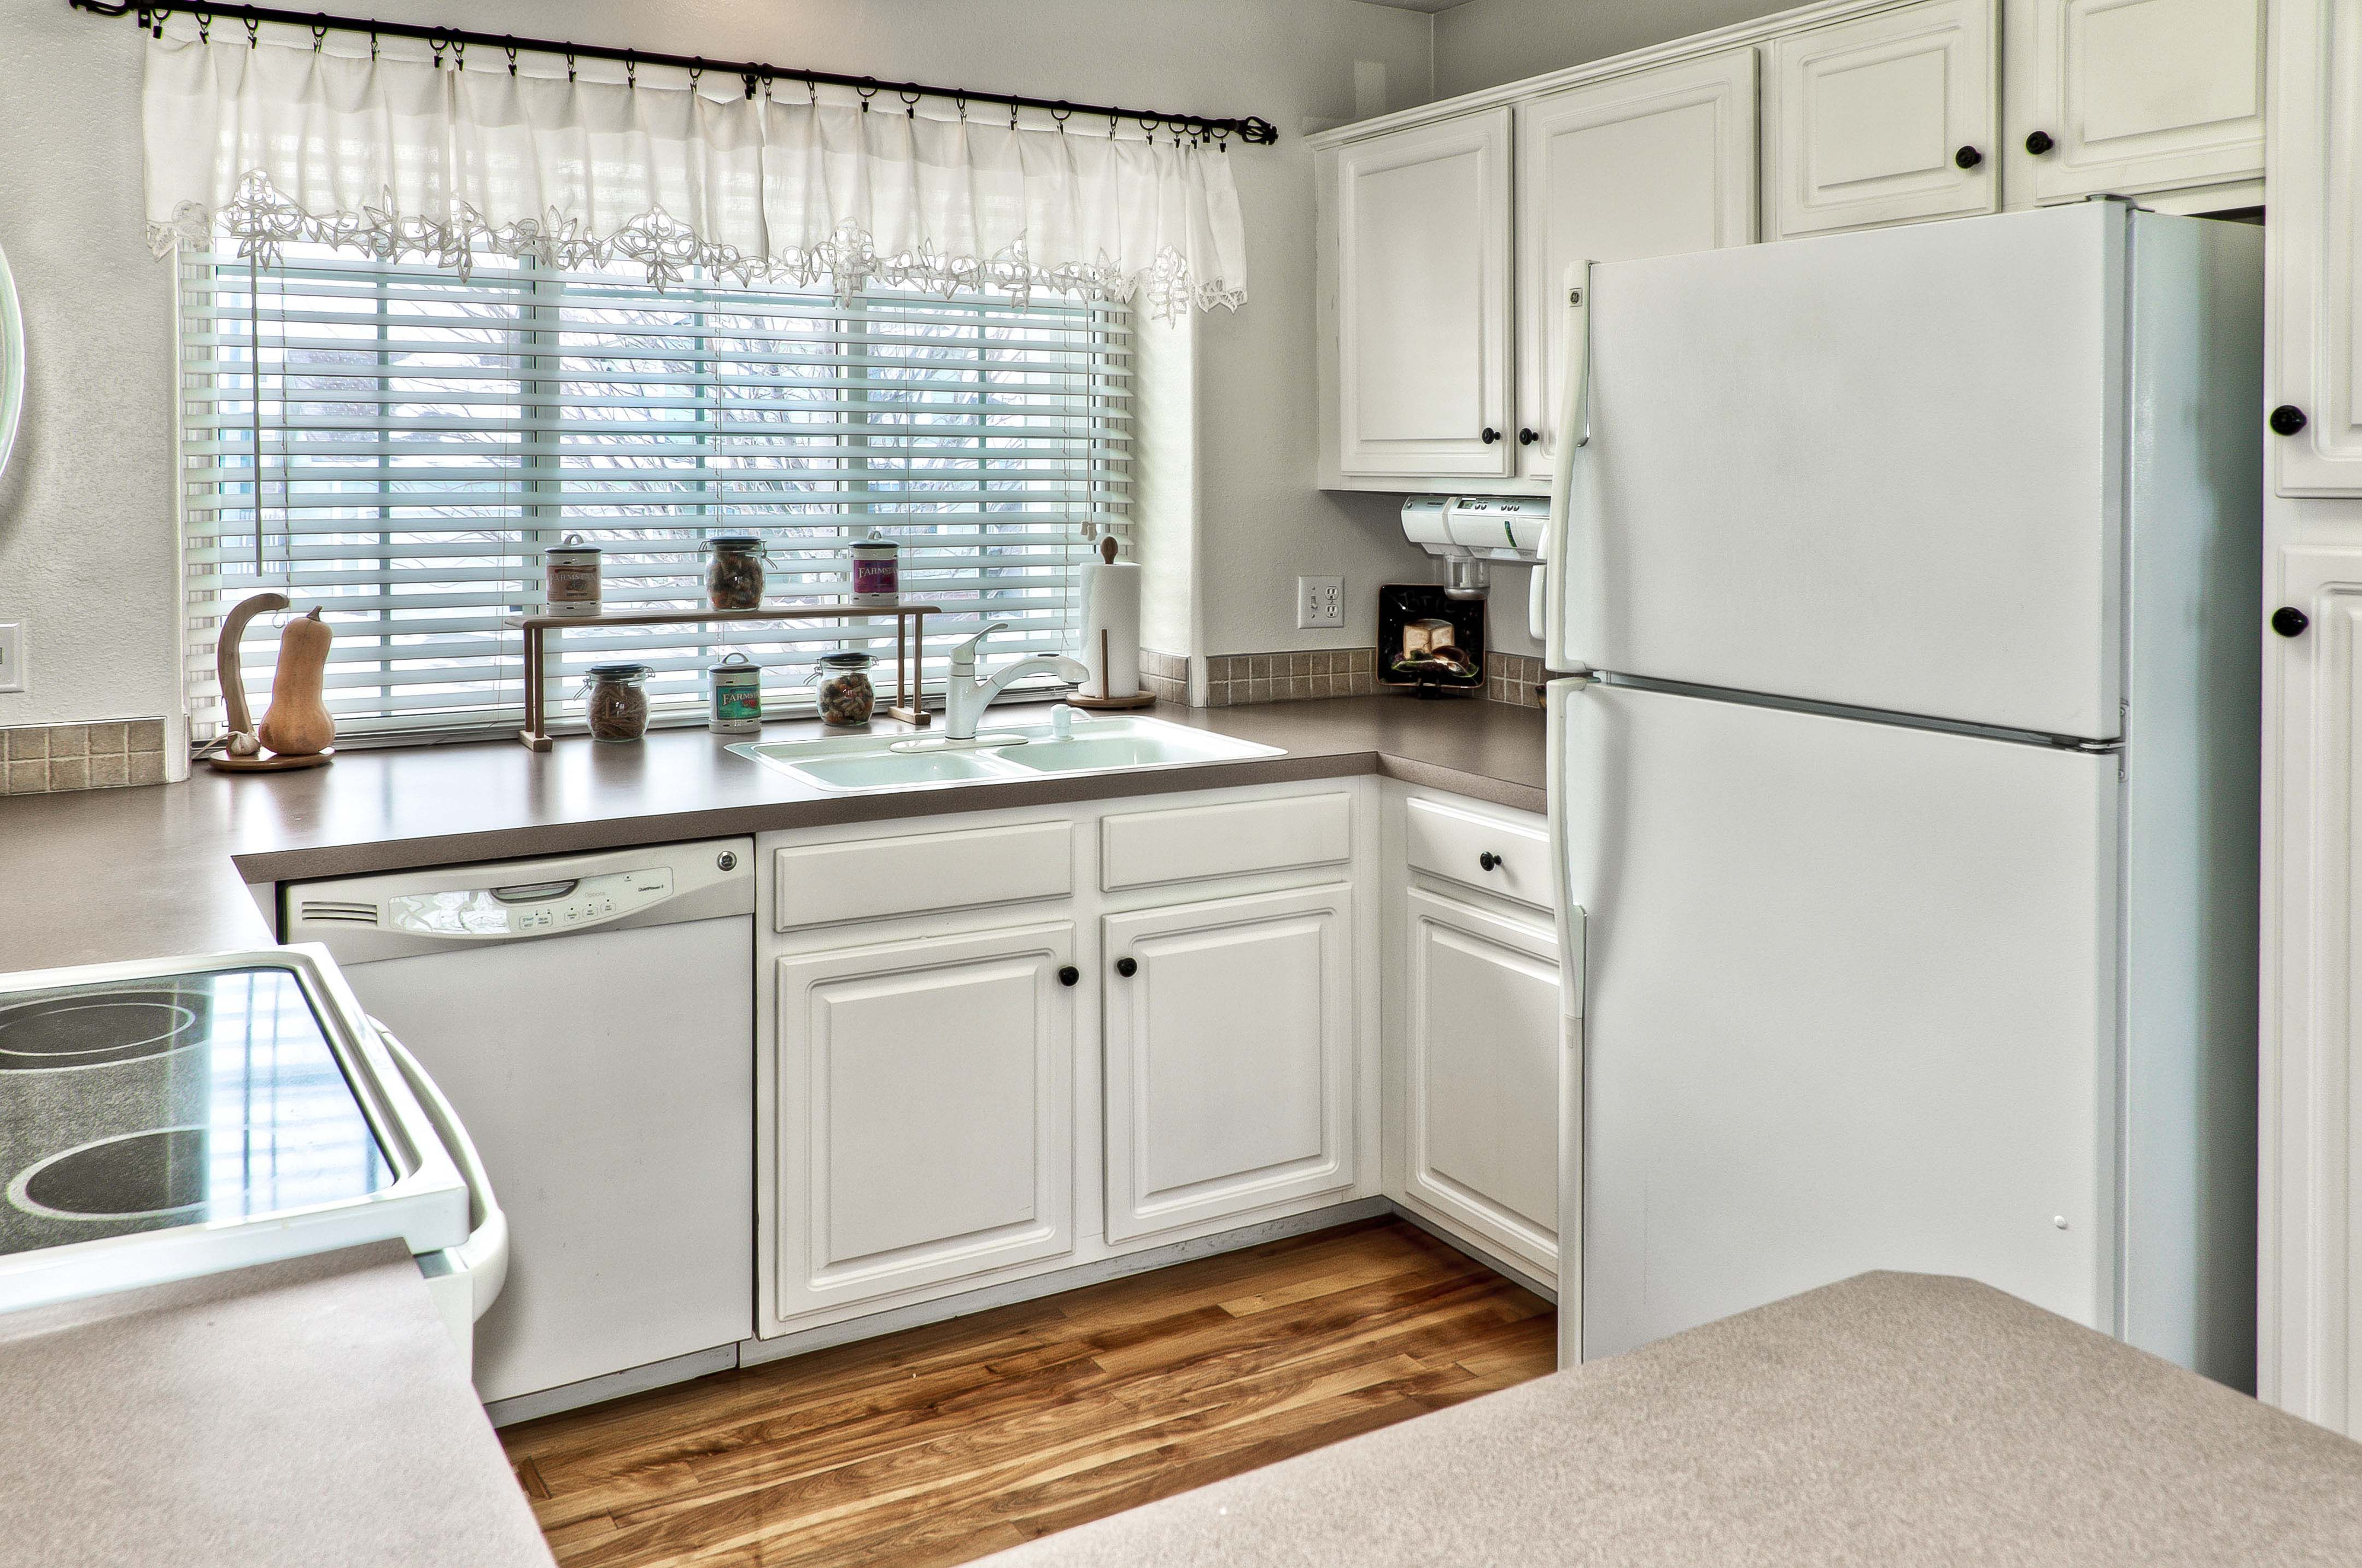 Kitchen In Omaha Area Home Photographed For Np Dodge Real Estate Beautiful Kitchens Home Kitchen